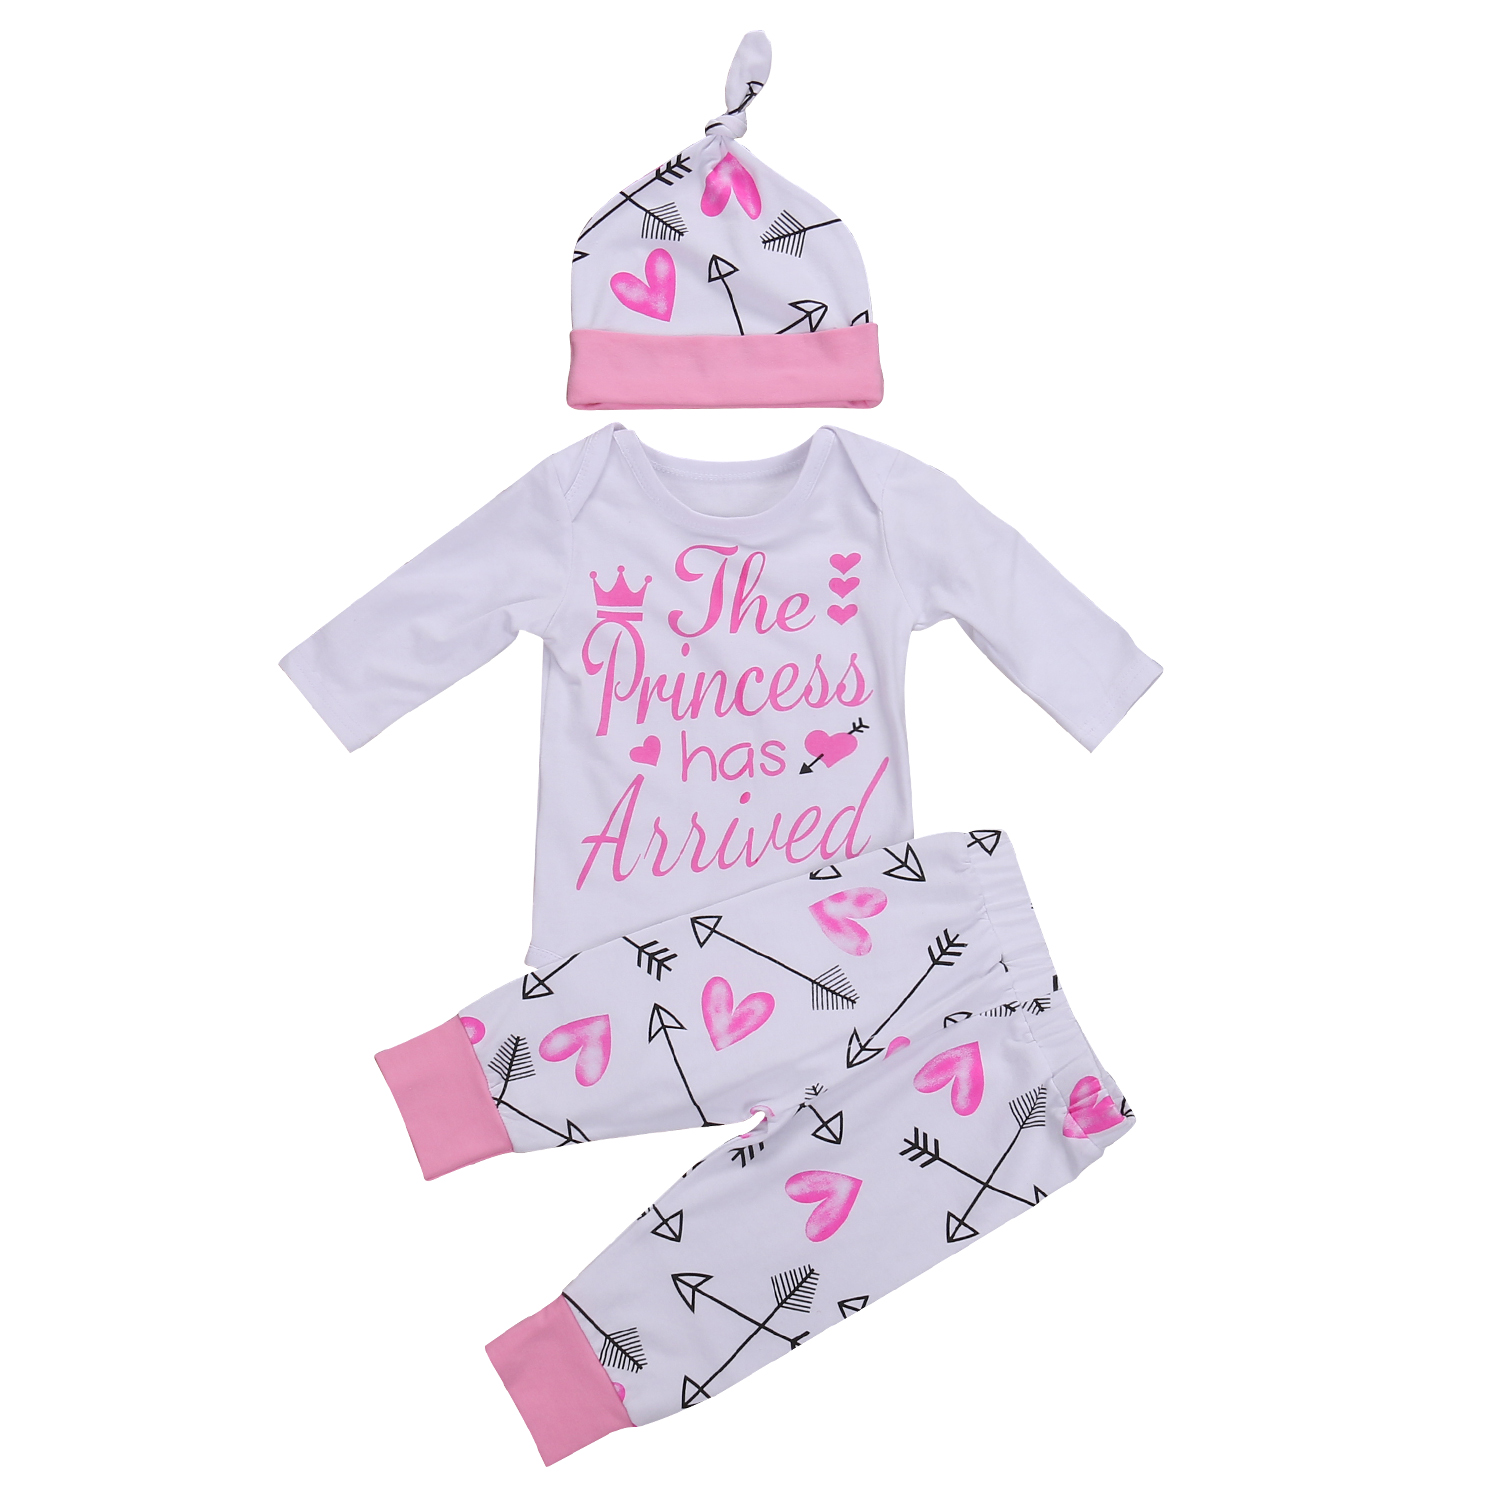 Autumn Toddler Newborn Baby Girls Clothes Letter Print Romper Jumpsuit+Long Pants Hat Outfit Cute Cotton Clothing 3pcs 0-24M 3pcs set newborn girls christmas clothes set warm hat letter print romper love arrow print pants leisure toddler baby outfit set